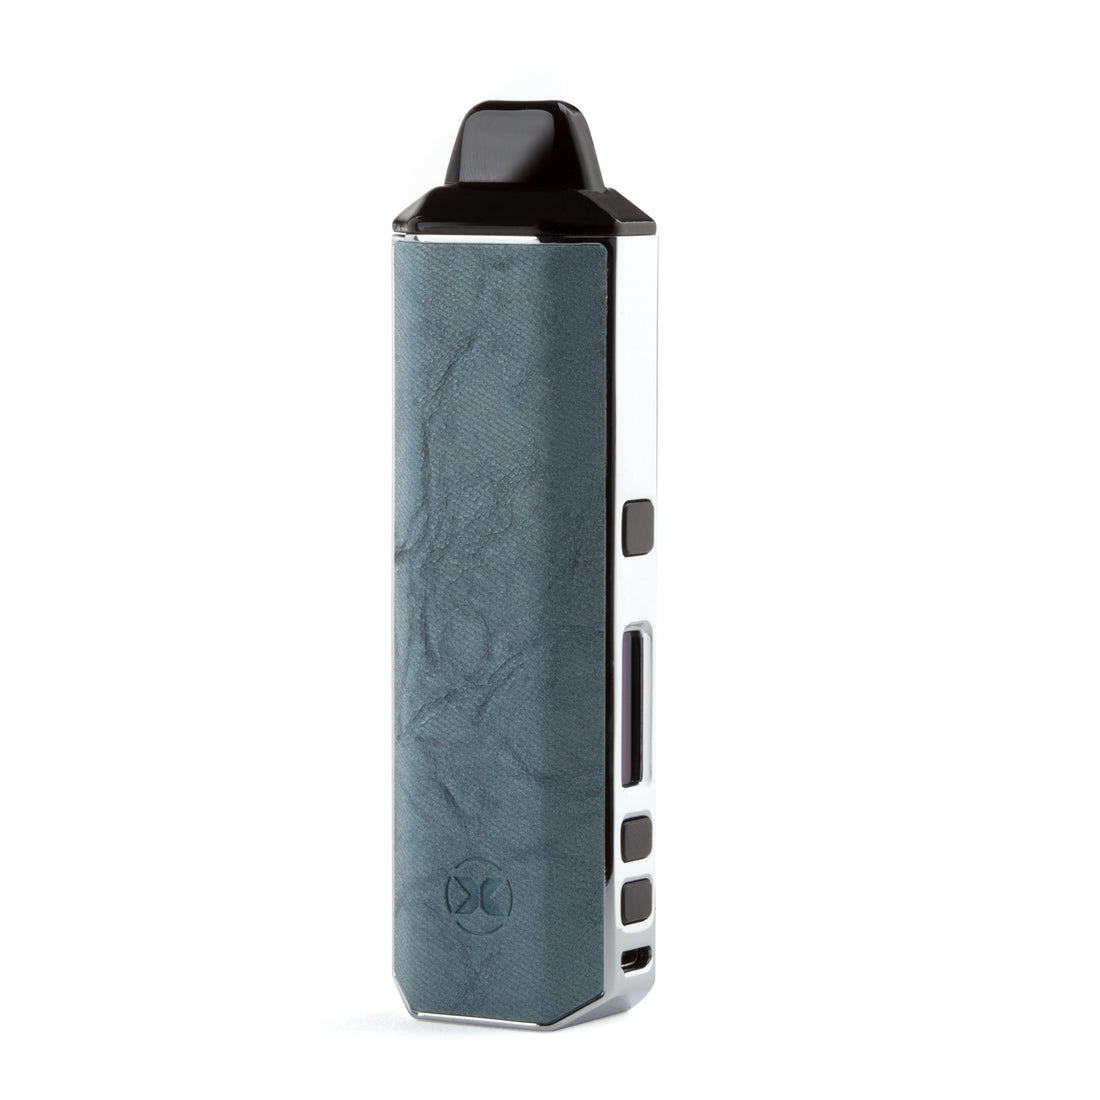 XVape Aria Dry Herb Vaporizer - 420 Science - The most trusted online smoke shop.